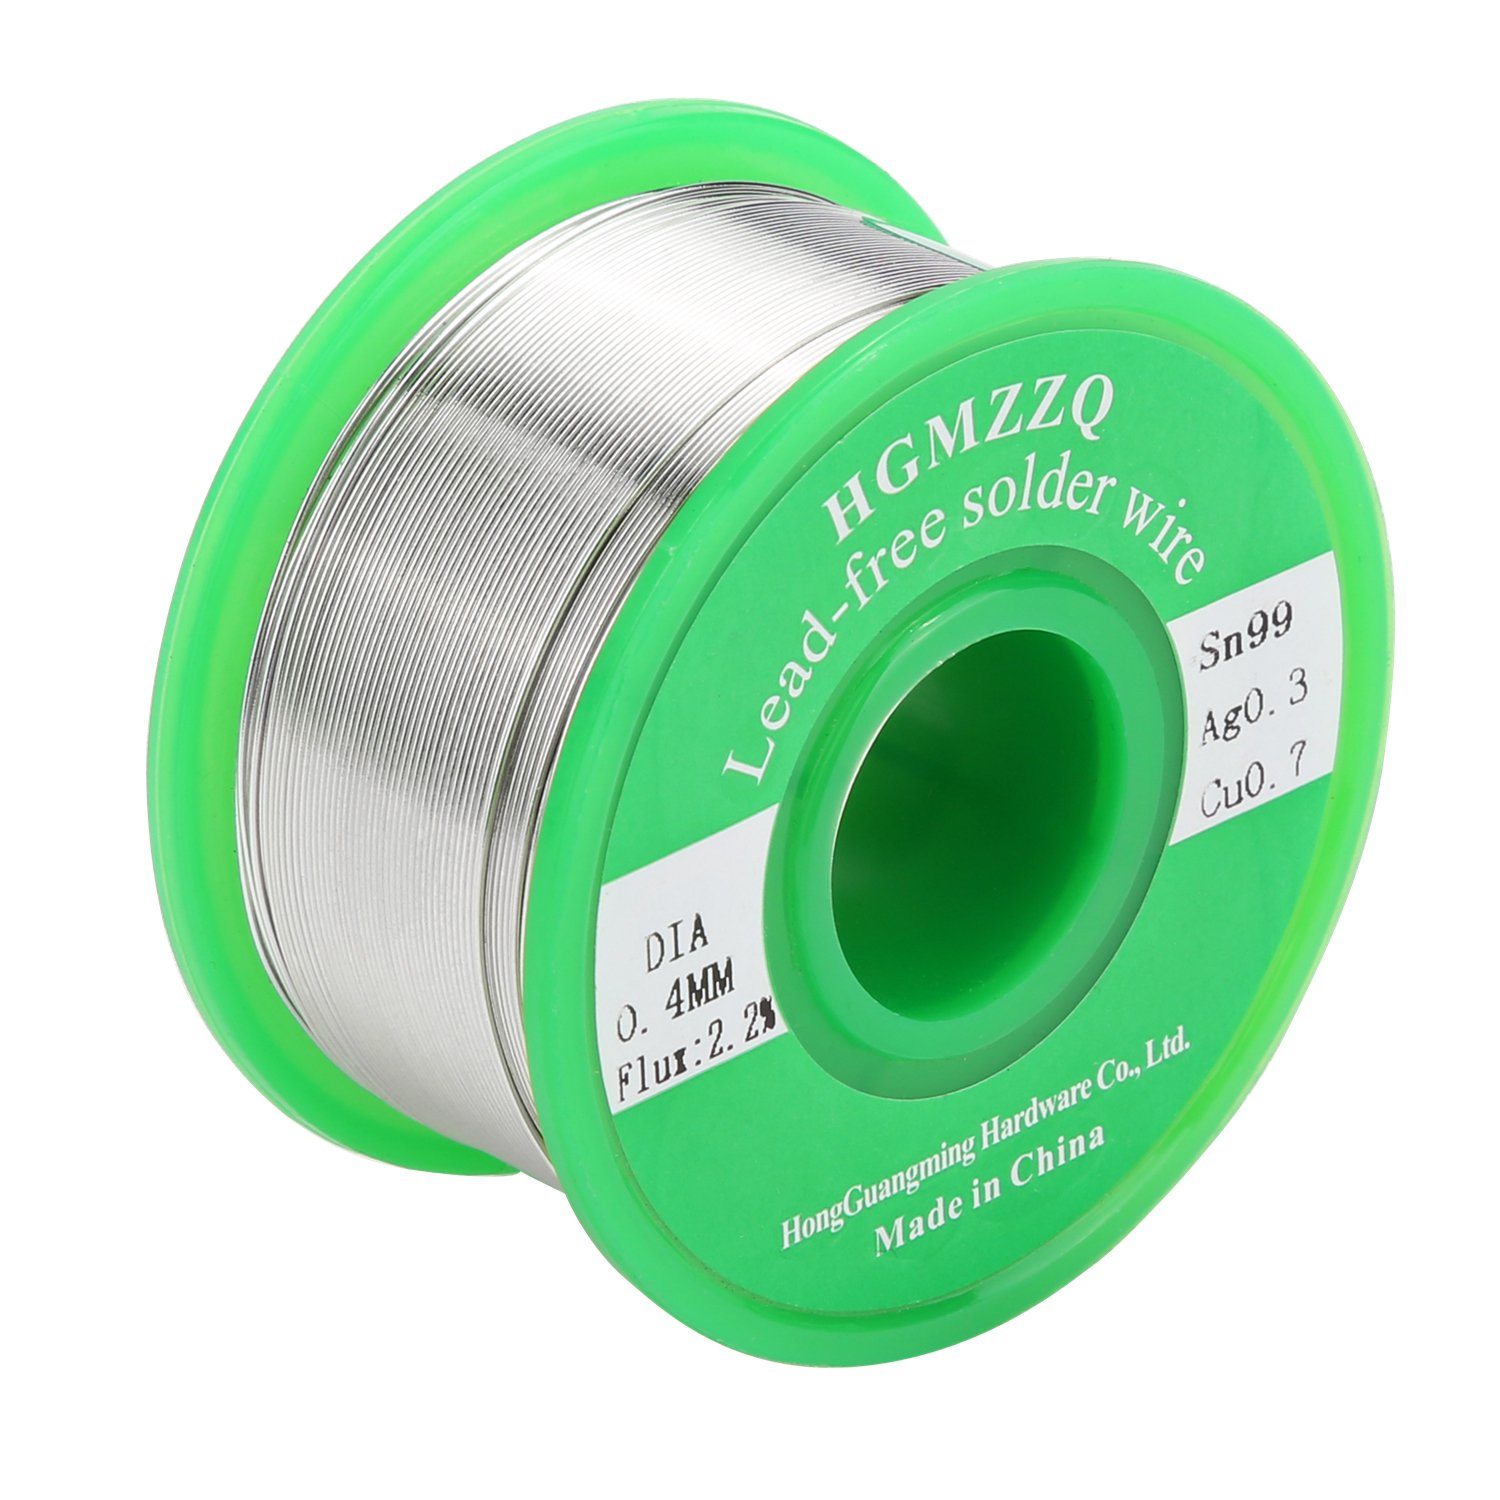 HGMZZQ Lead Free Solder Wire with Rosin Core for Electrical Soldering Sn99 Ag0.3 Cu0.7 100g 0.015 inch(0.4mm-0.22lbs)